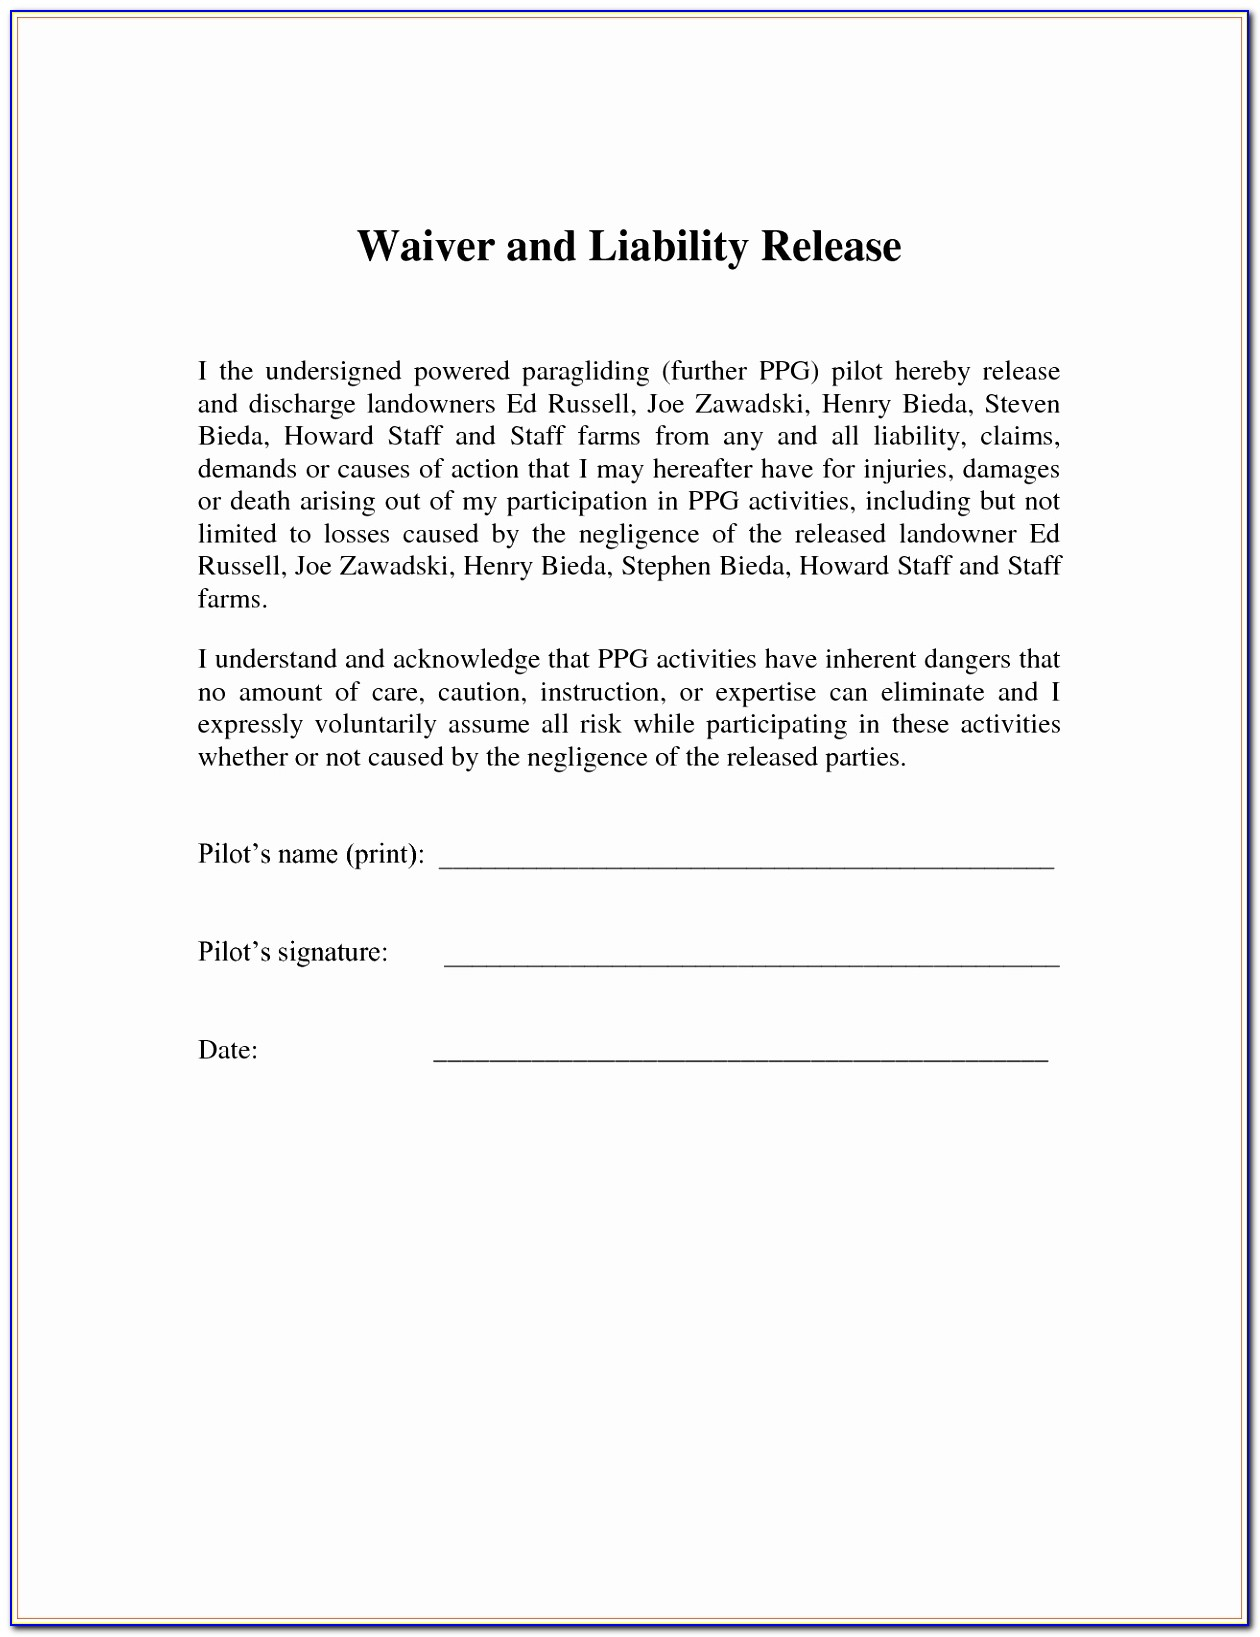 Liability Waiver Template Free Coupon Layouts Simple Fitness Waiver And Release Form Template Lovely Pdf Word Excel Templates Wotoe